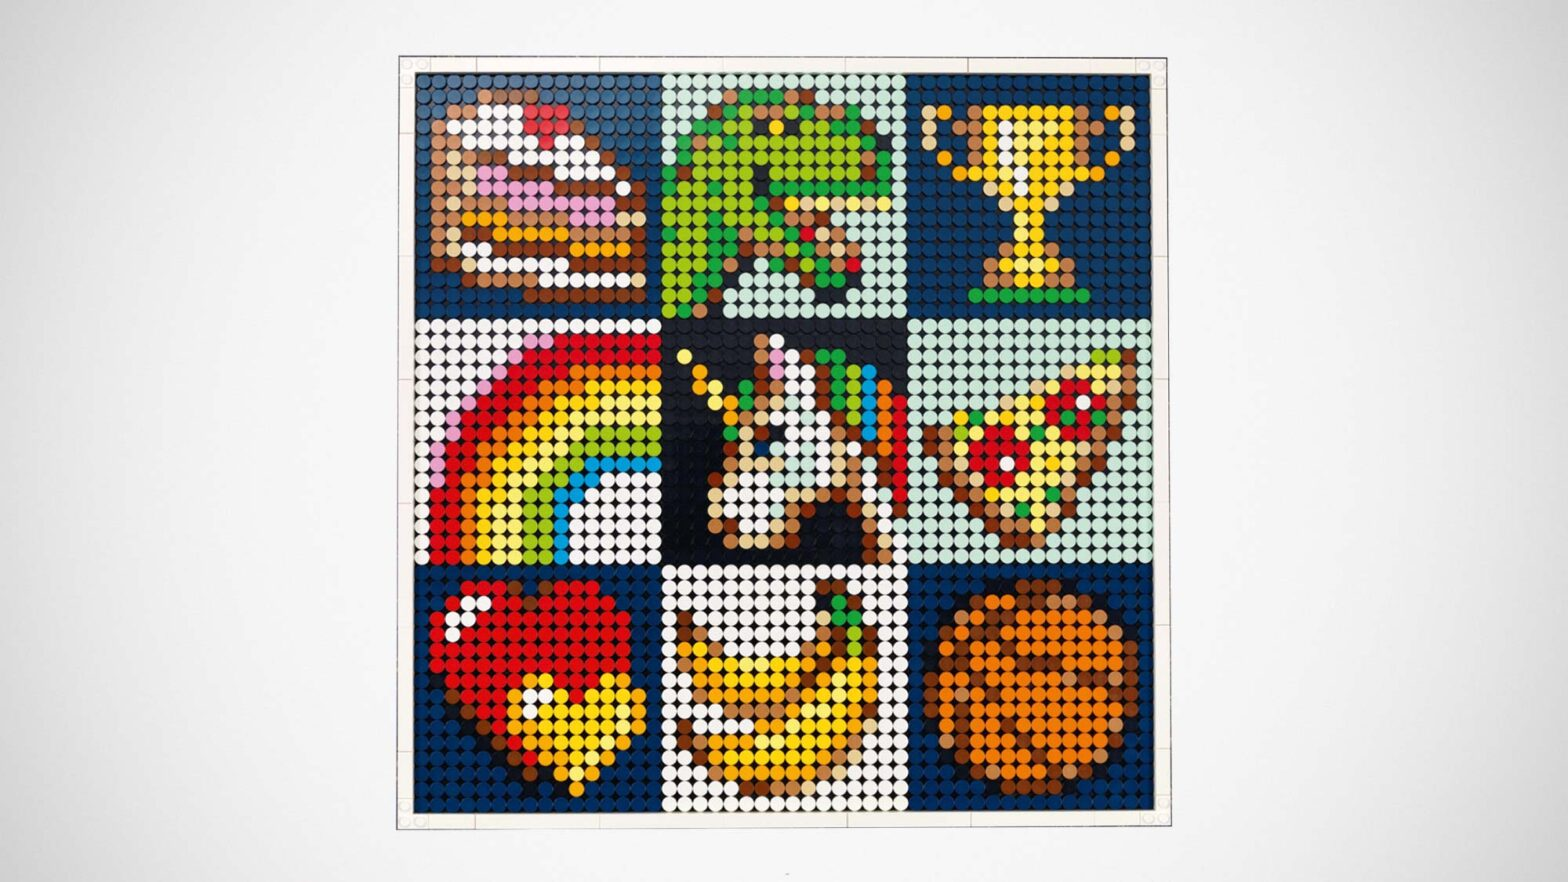 LEGO 21226 Art Project - Create Together